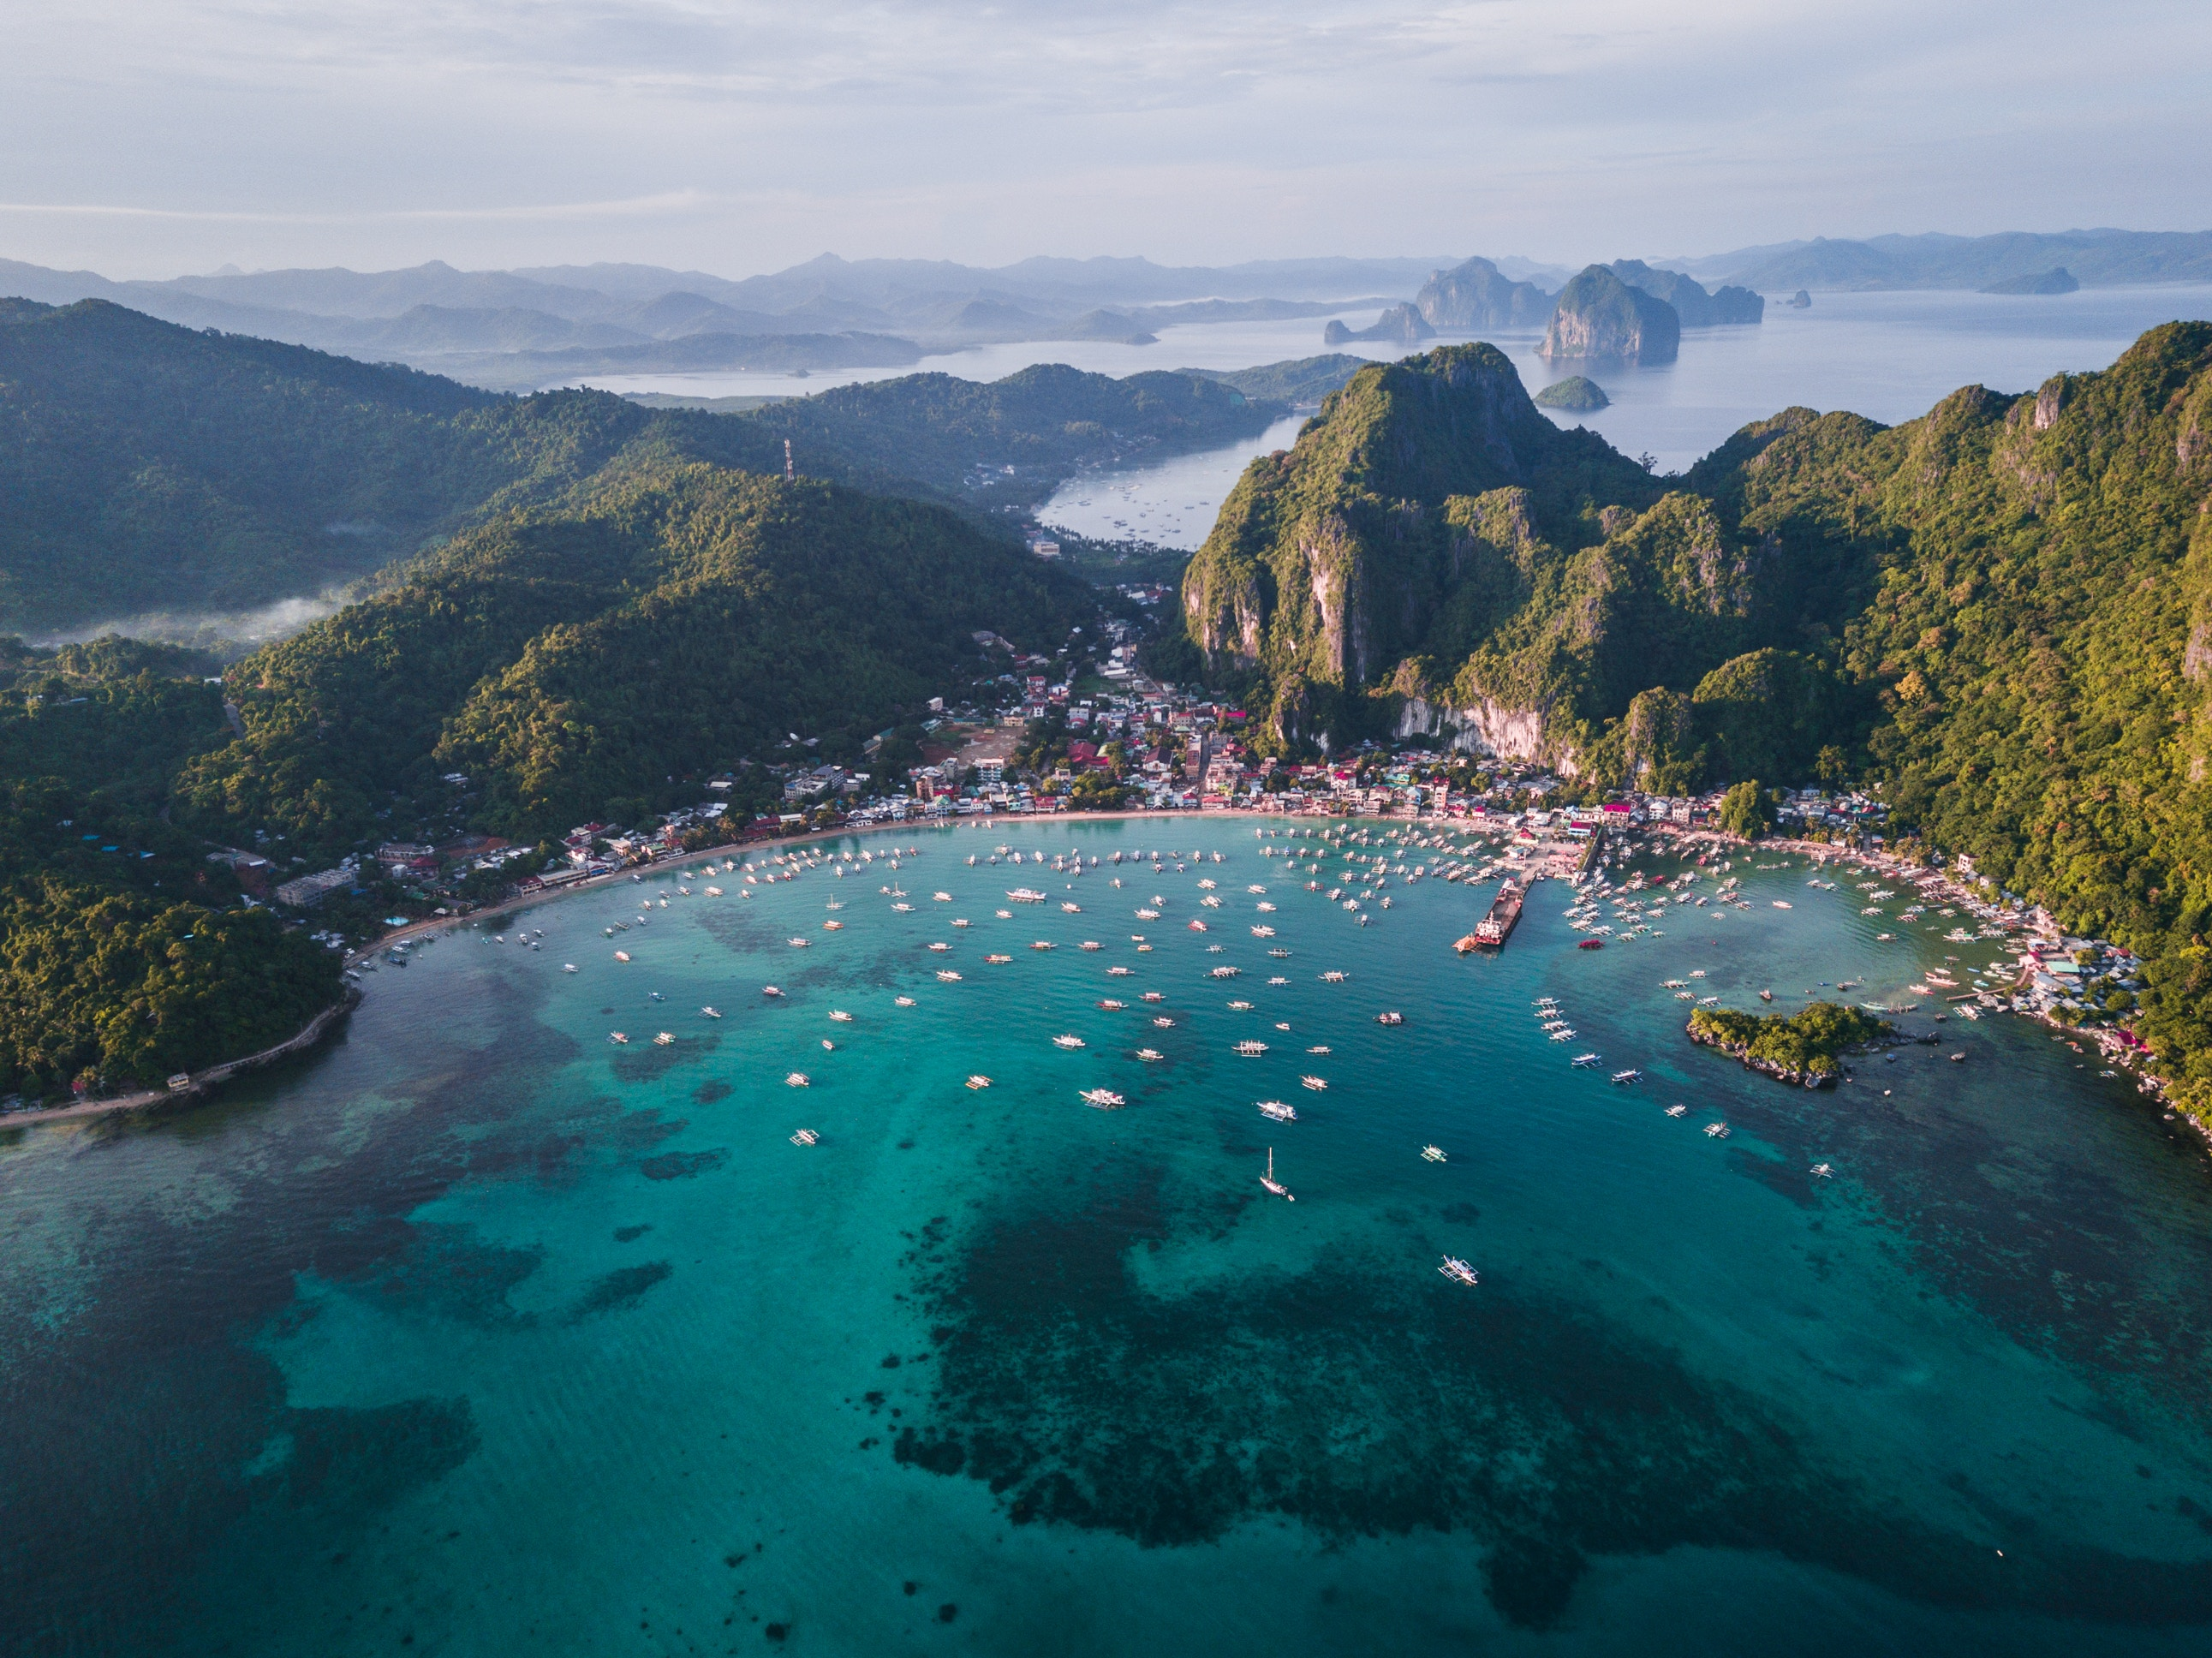 El Nido, Palawan Island, the Philippines